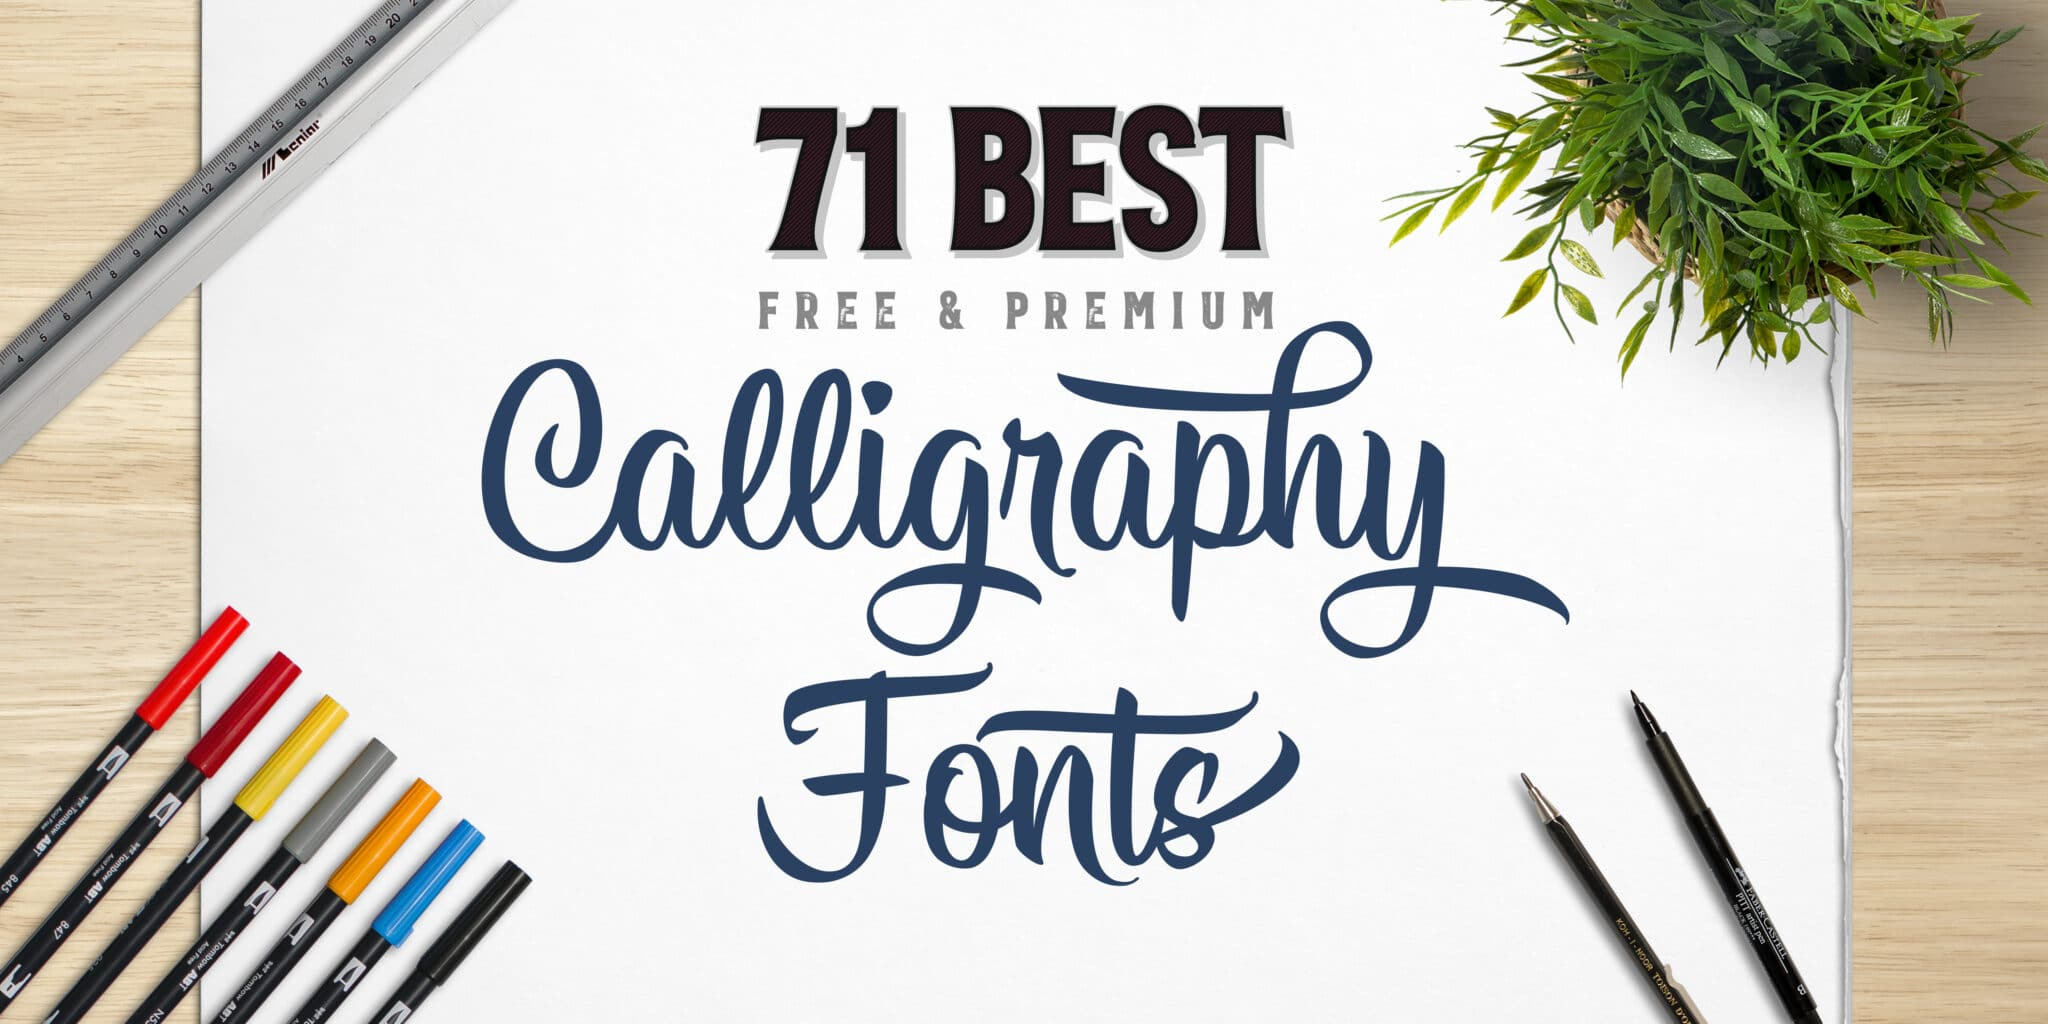 71 Of The Best Calligraphy Fonts Free Premium Lettering Daily